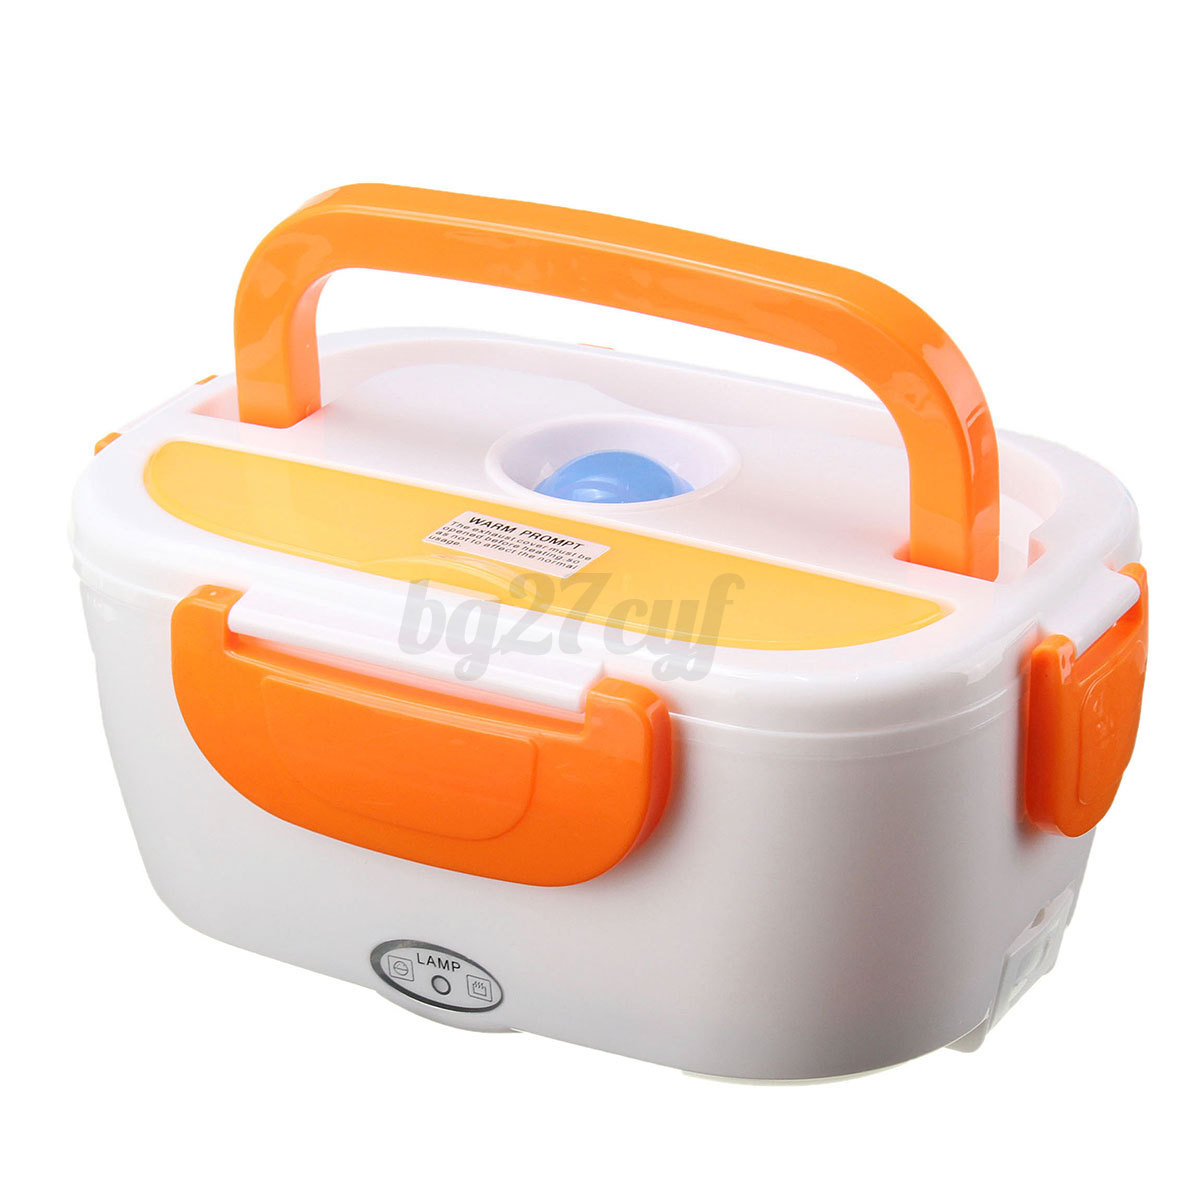 portable electric heated car plug heating lunch bento box food warmer 12v 1 5. Black Bedroom Furniture Sets. Home Design Ideas